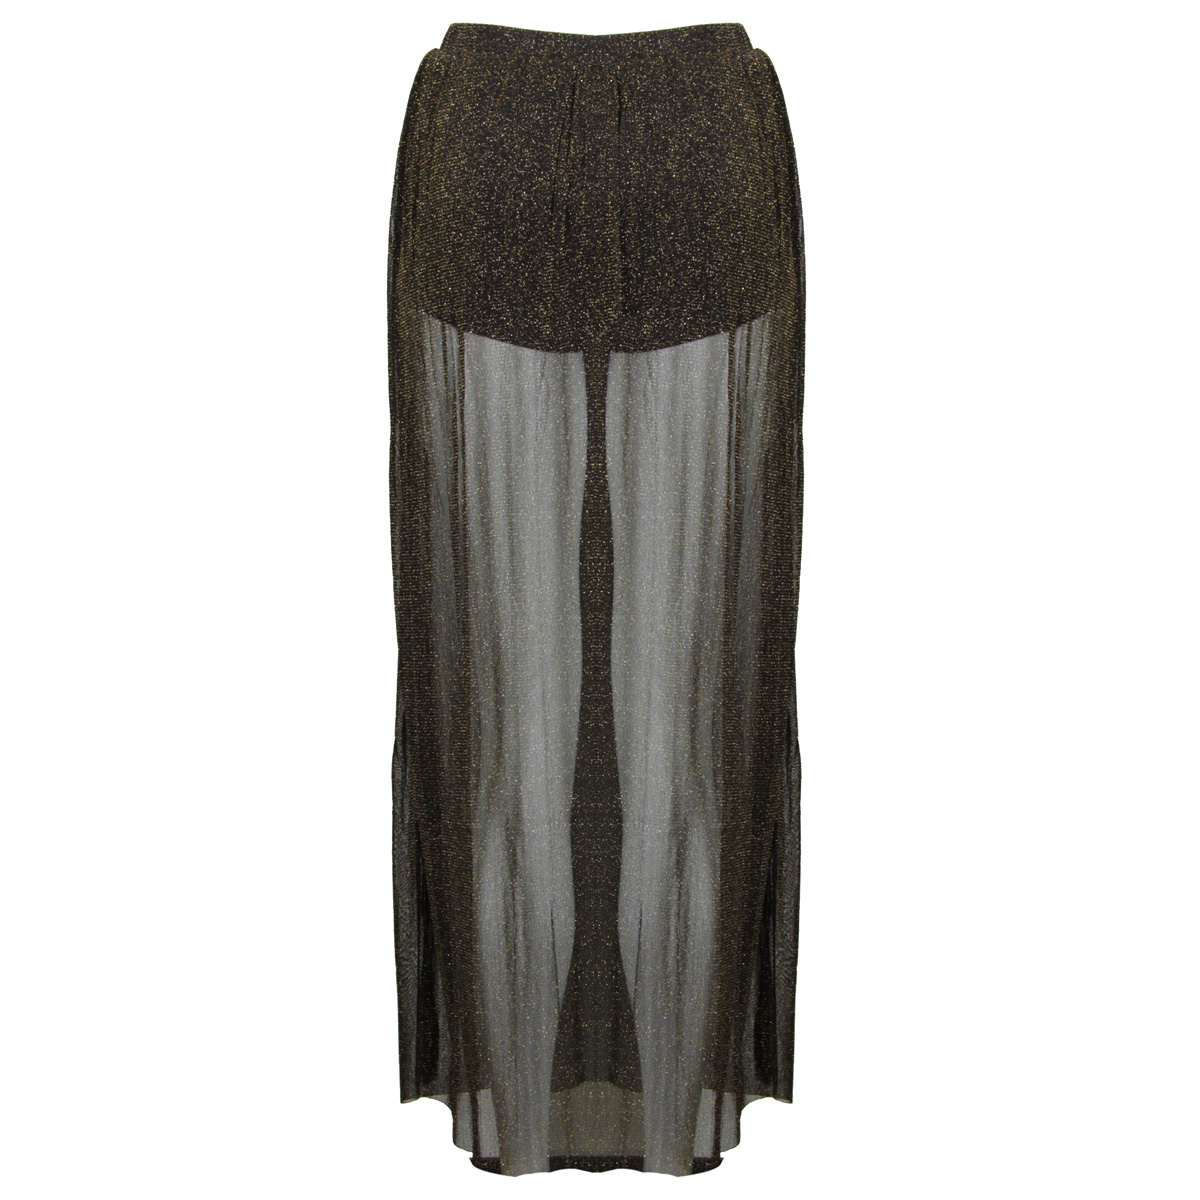 new womens black gold glitter maxi skirt elasticated waist